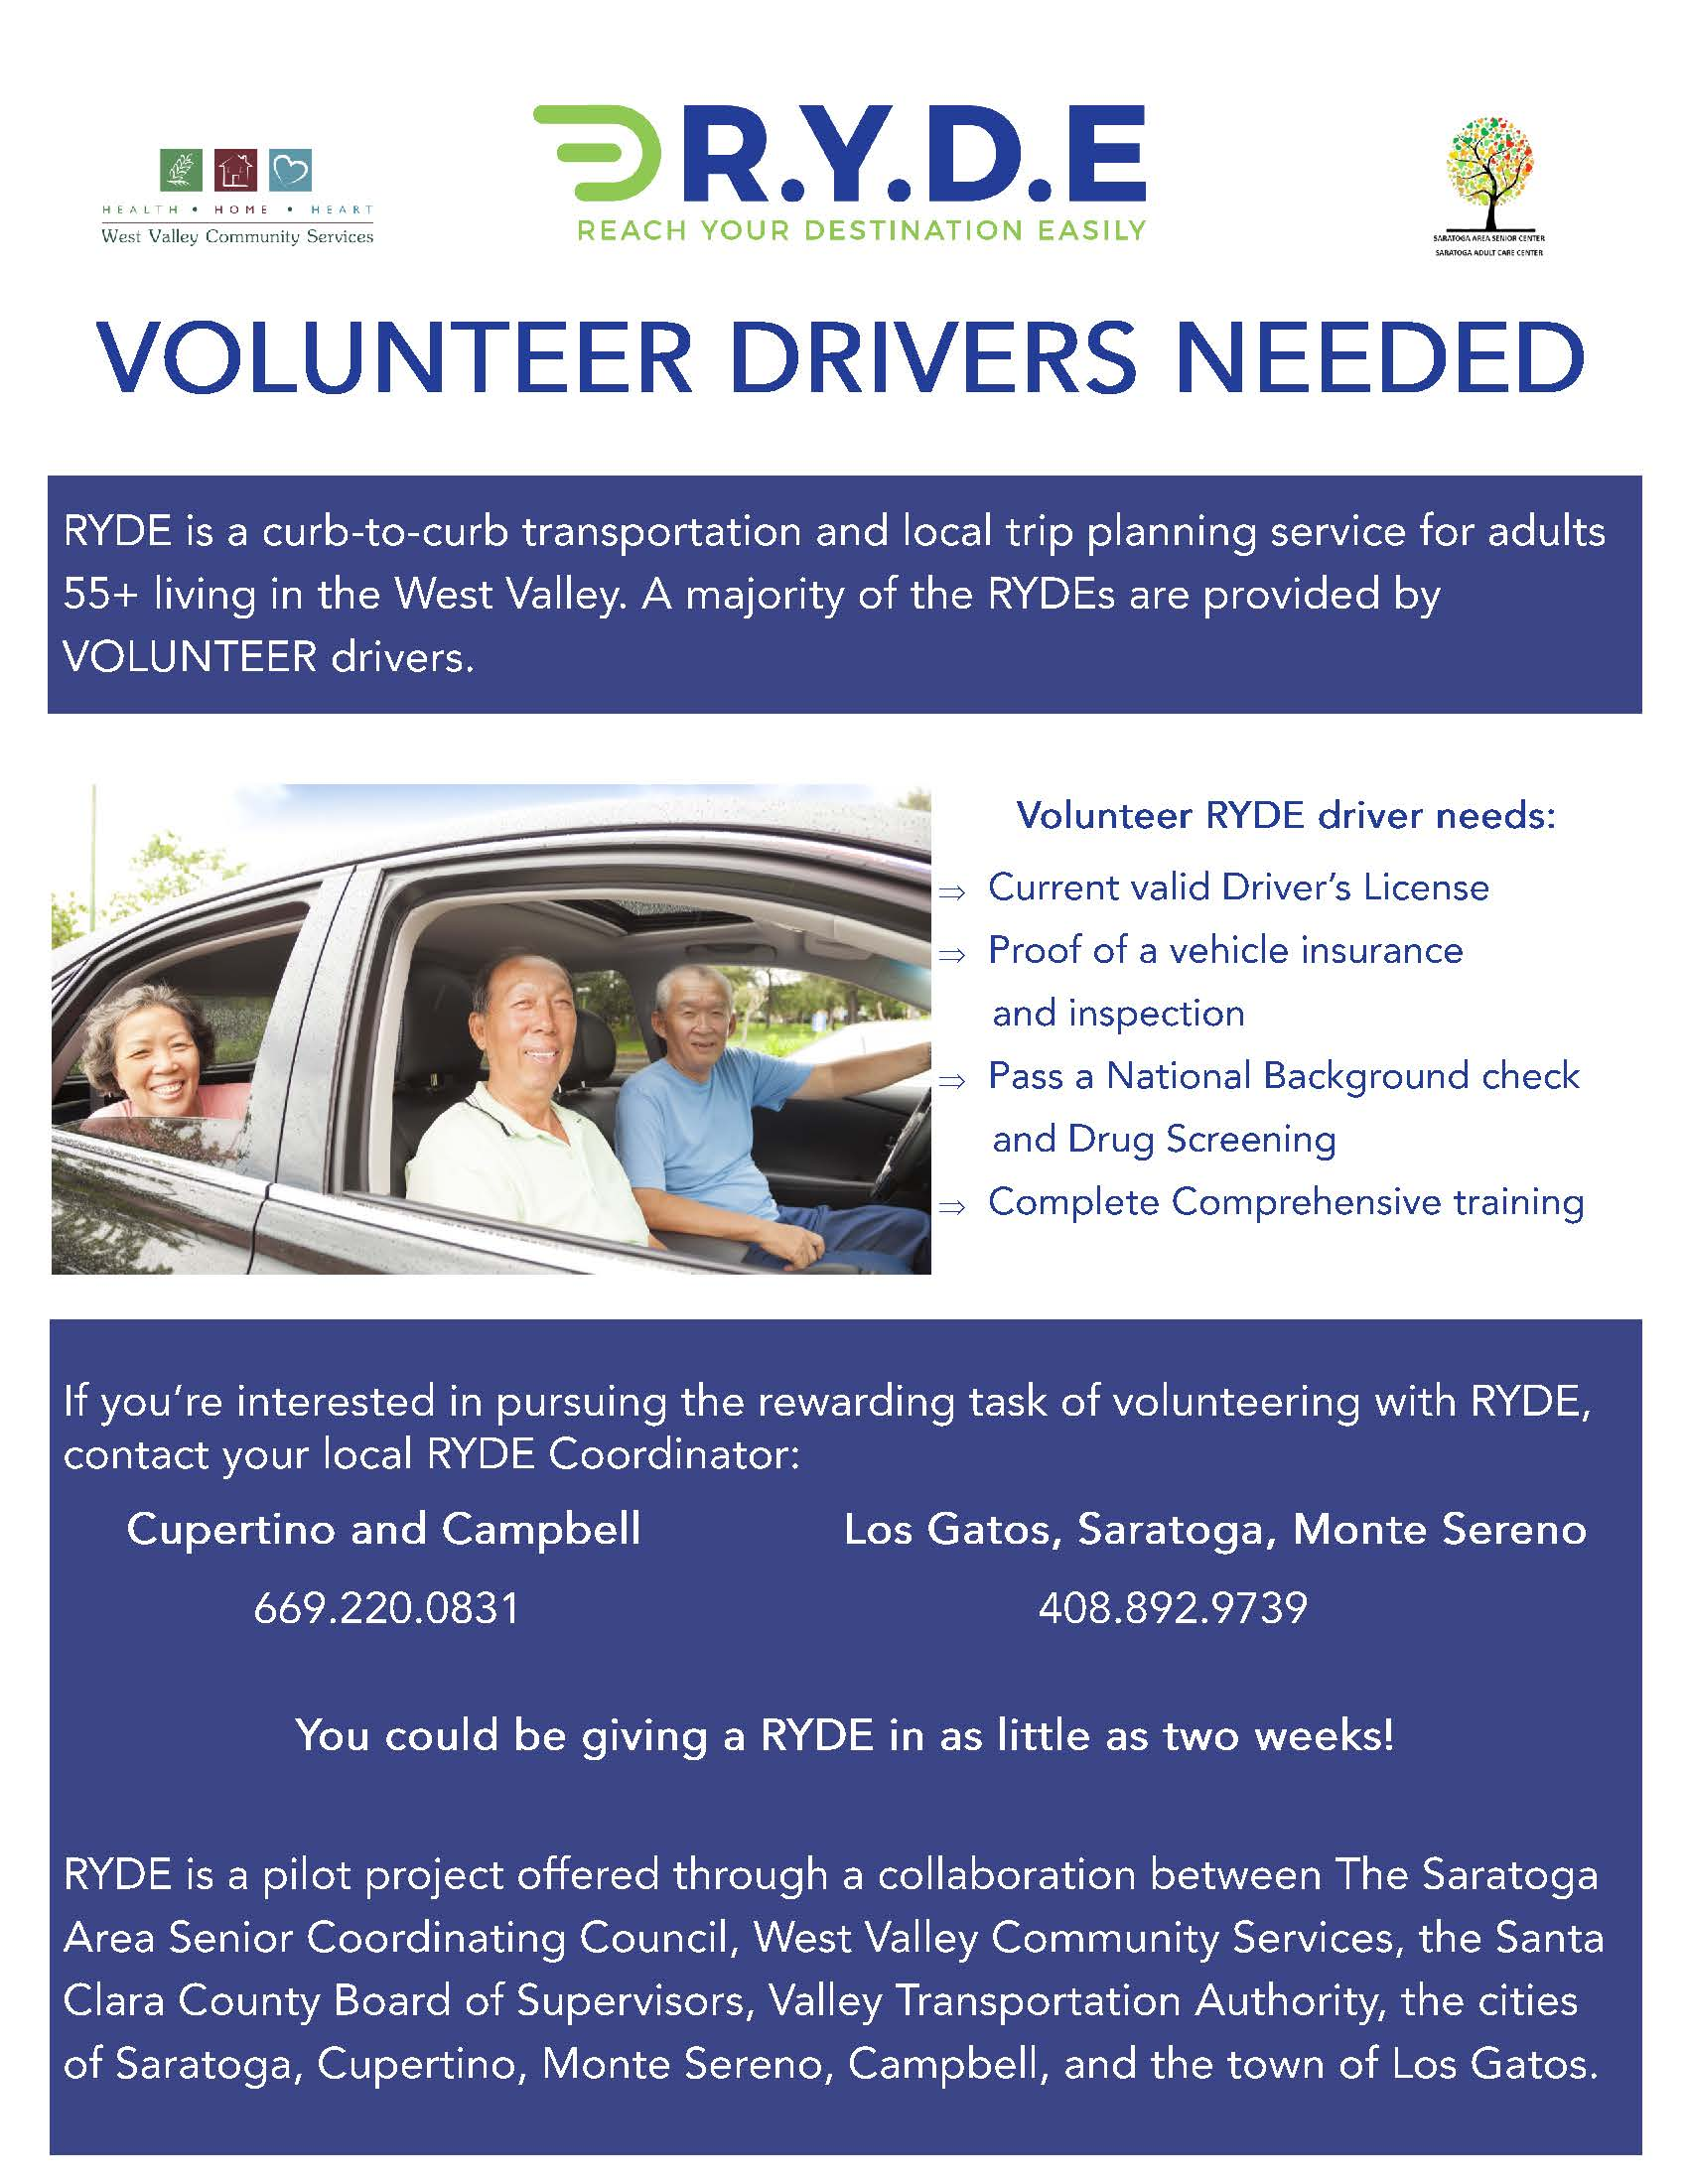 RYDE Volunteer Flyer